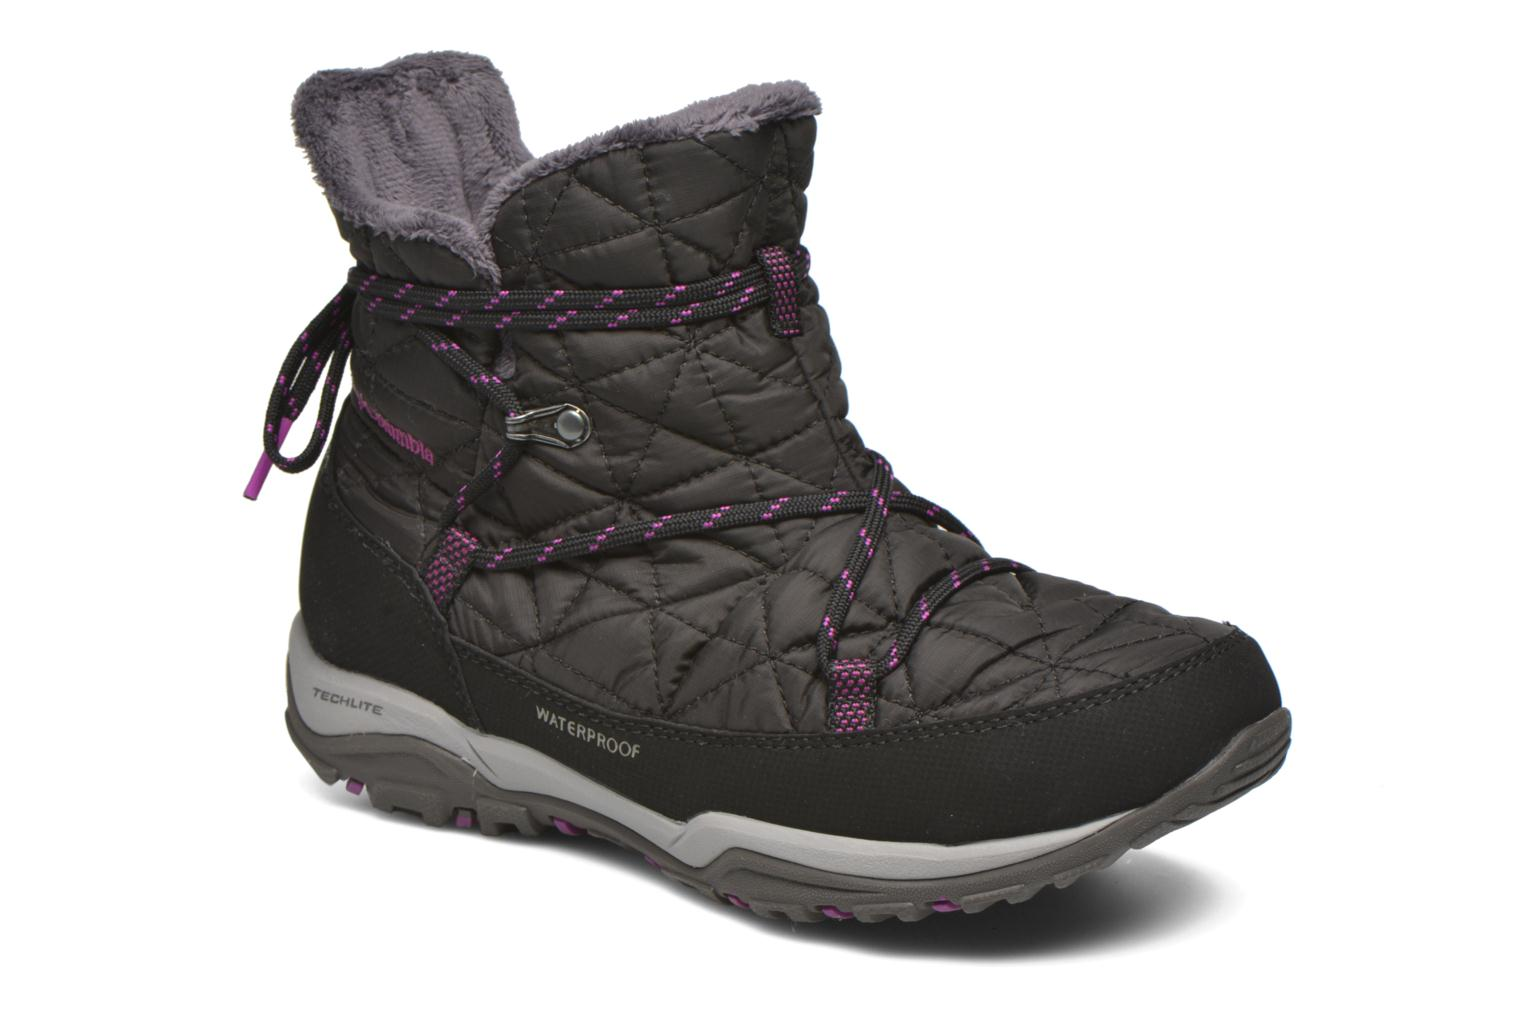 Loveland Shorty Omni-Heat Black, Bright Plum